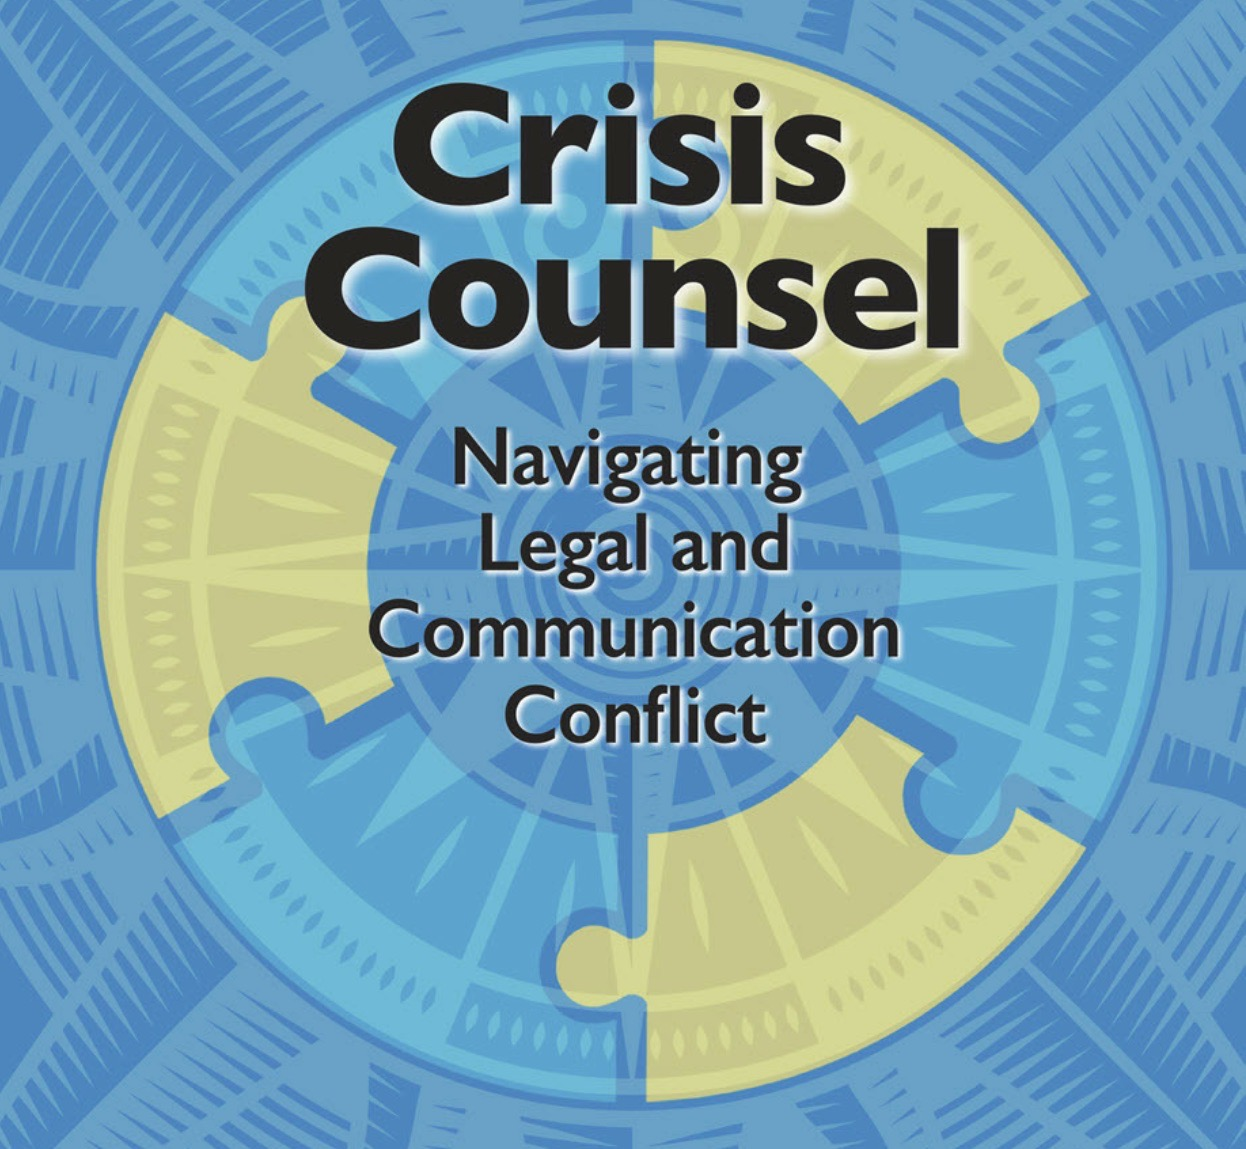 Worth Reading – Crisis Counsel: Navigating Legal and Communication Conflict, by Tony Jaques, PhD